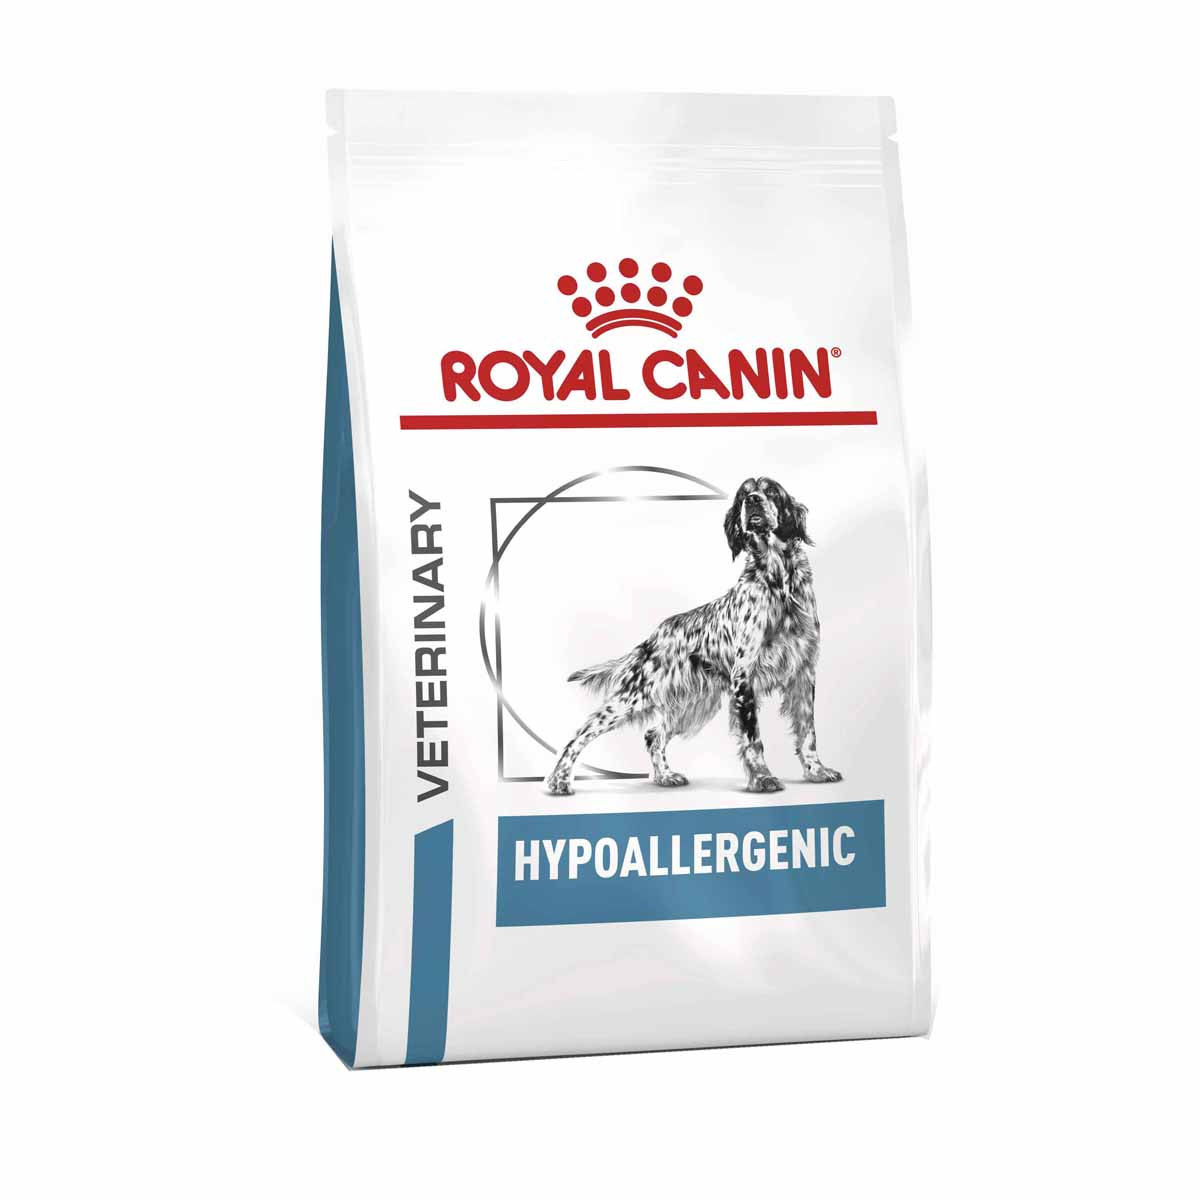 Royal Canin Hypoallergenic 14kg.